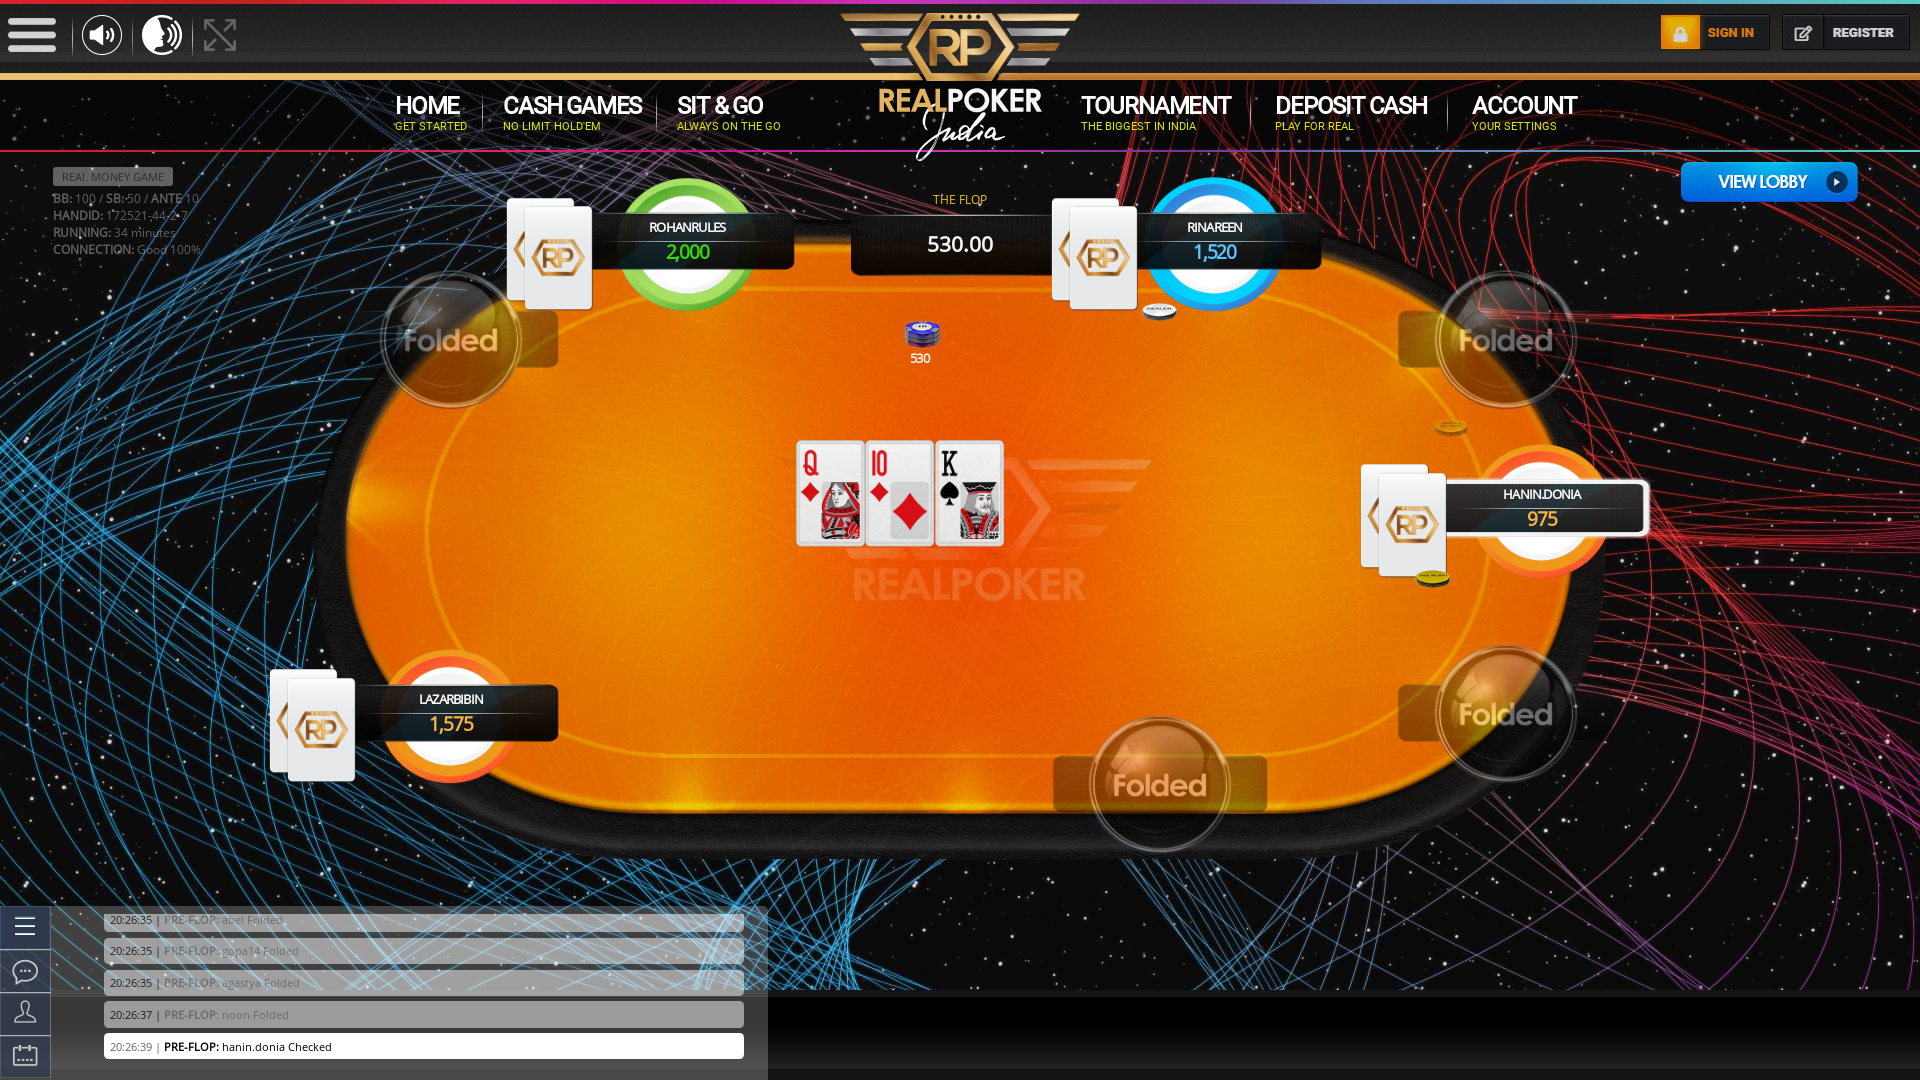 10 player texas holdem table at real poker with the table id 172521